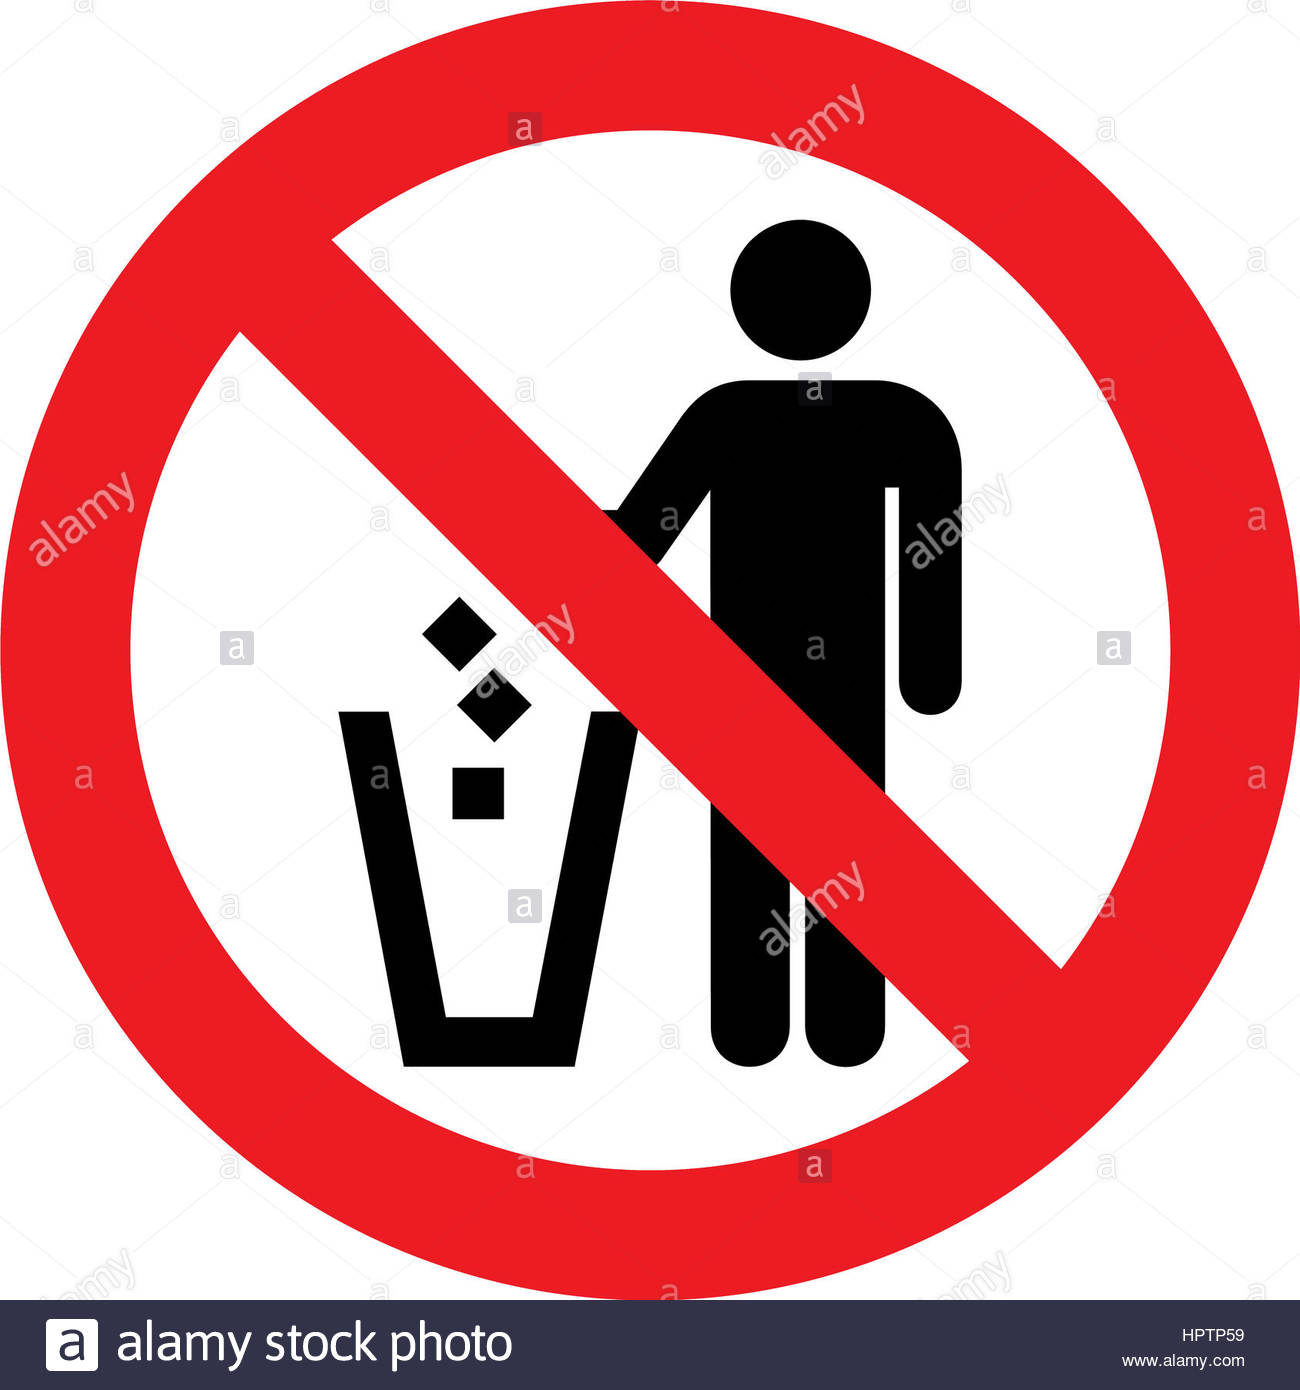 No littering sign clipart 4 » Clipart Station.